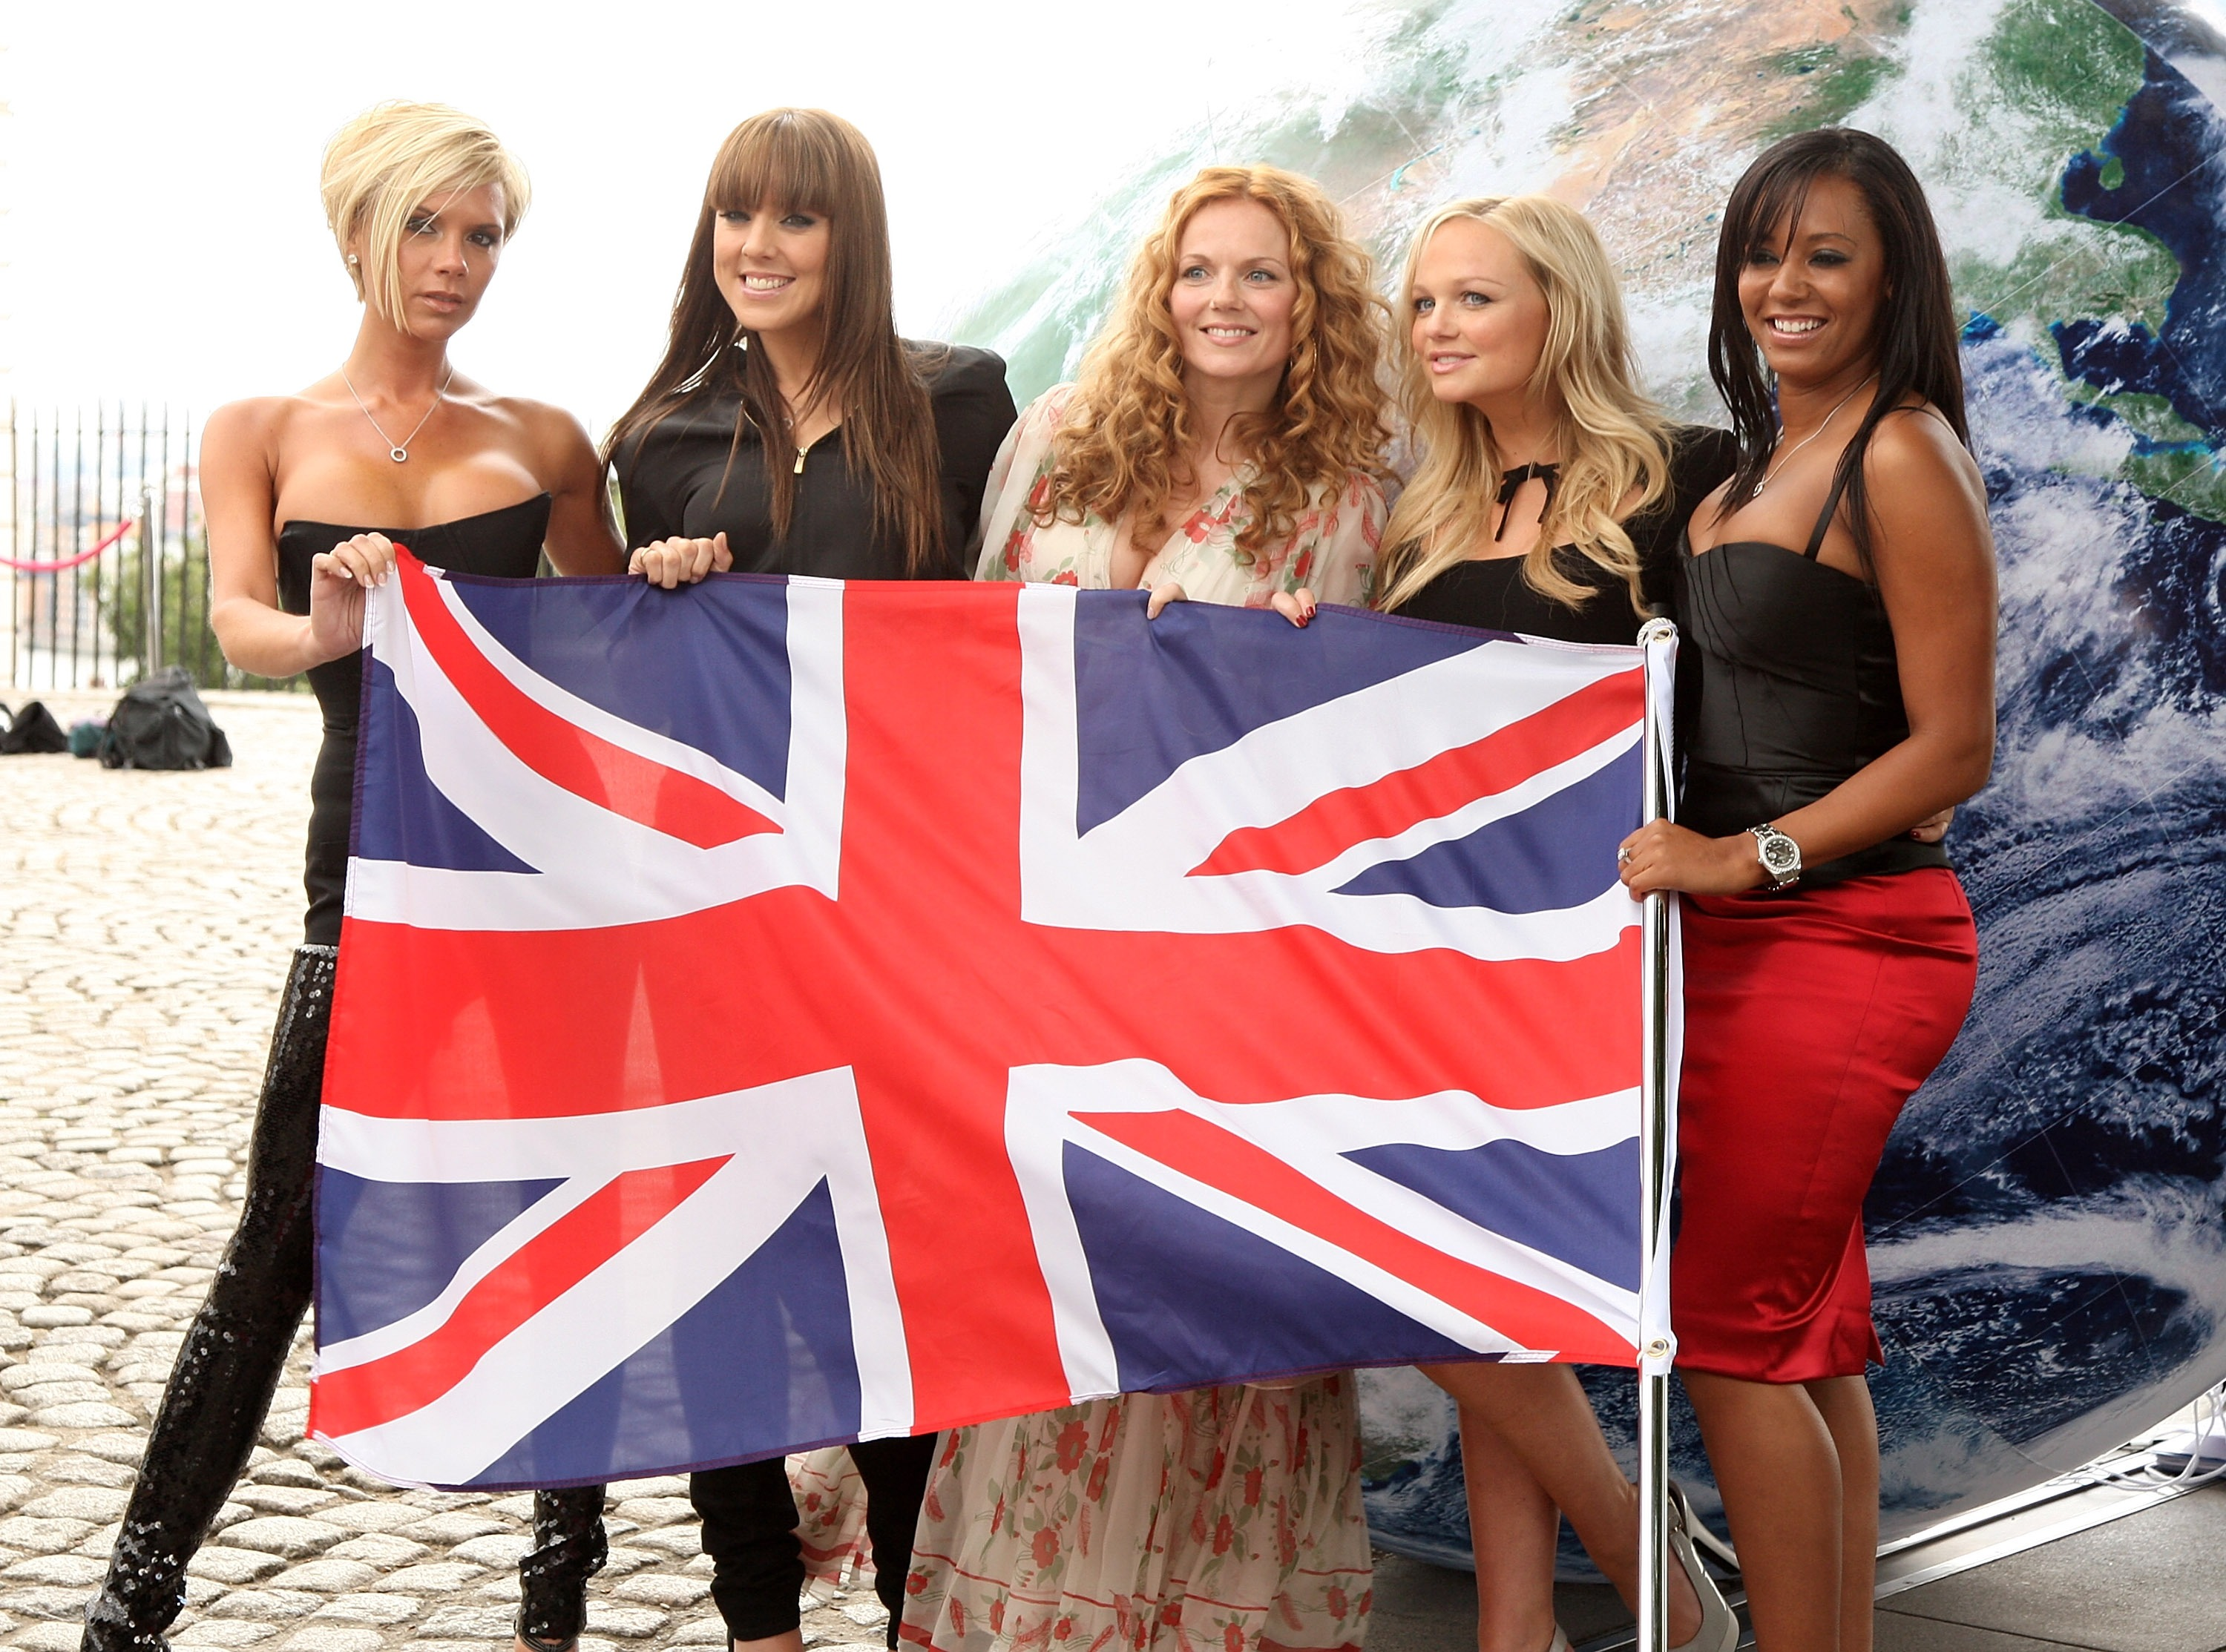 The Spice Girls'